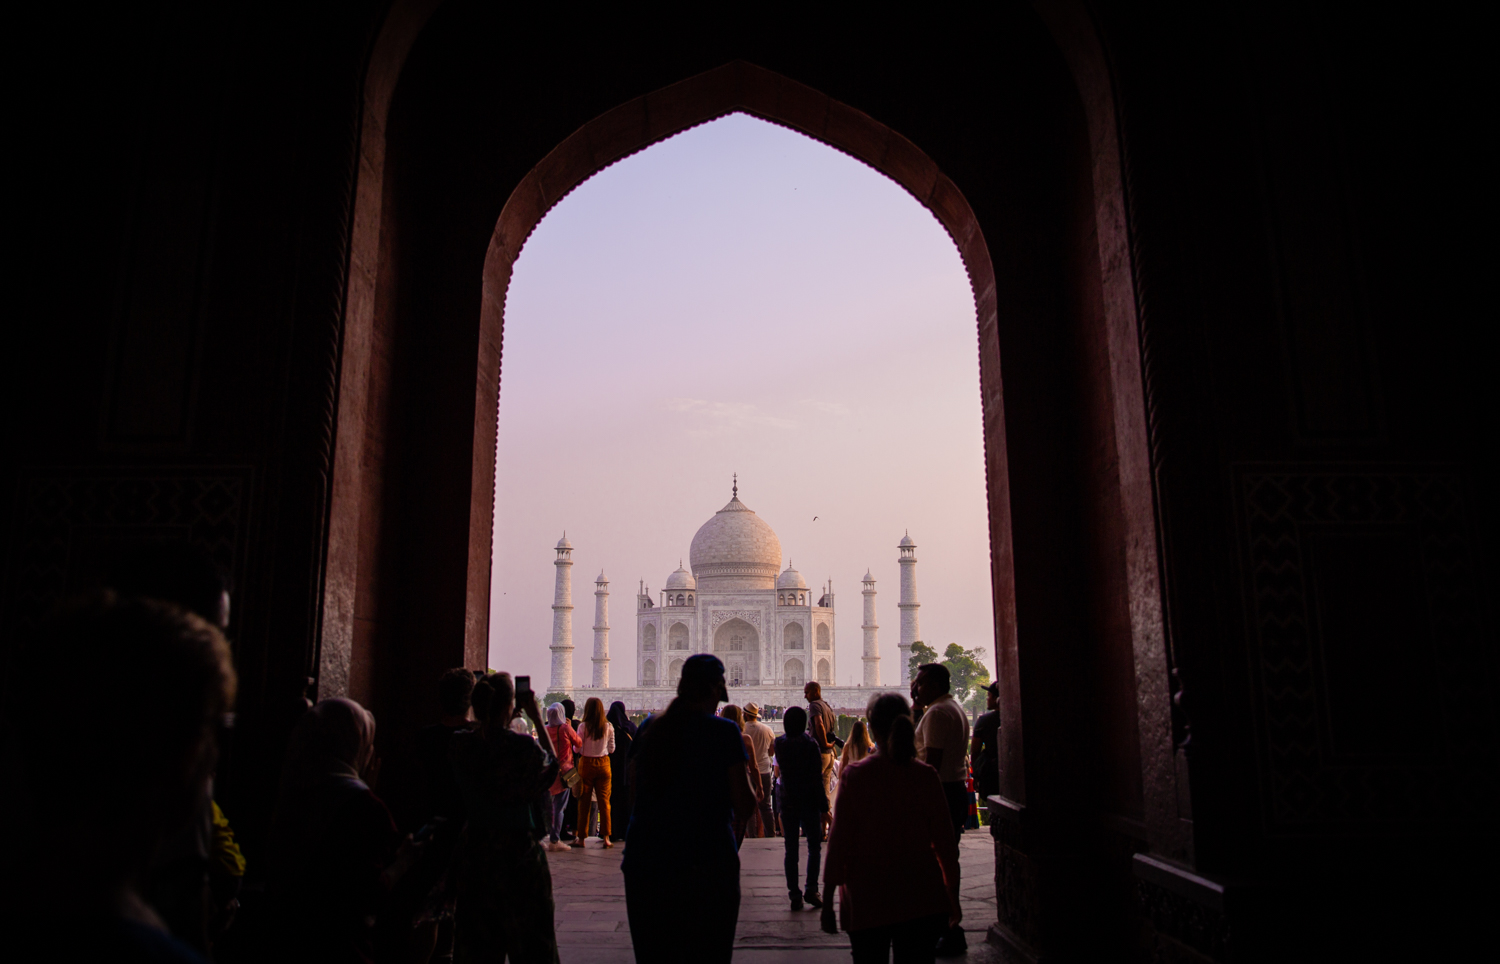 The Taj Mahal in Agra, as captured at 6 am. I went early to avoid tourists, but it turns out everyone had the same idea.